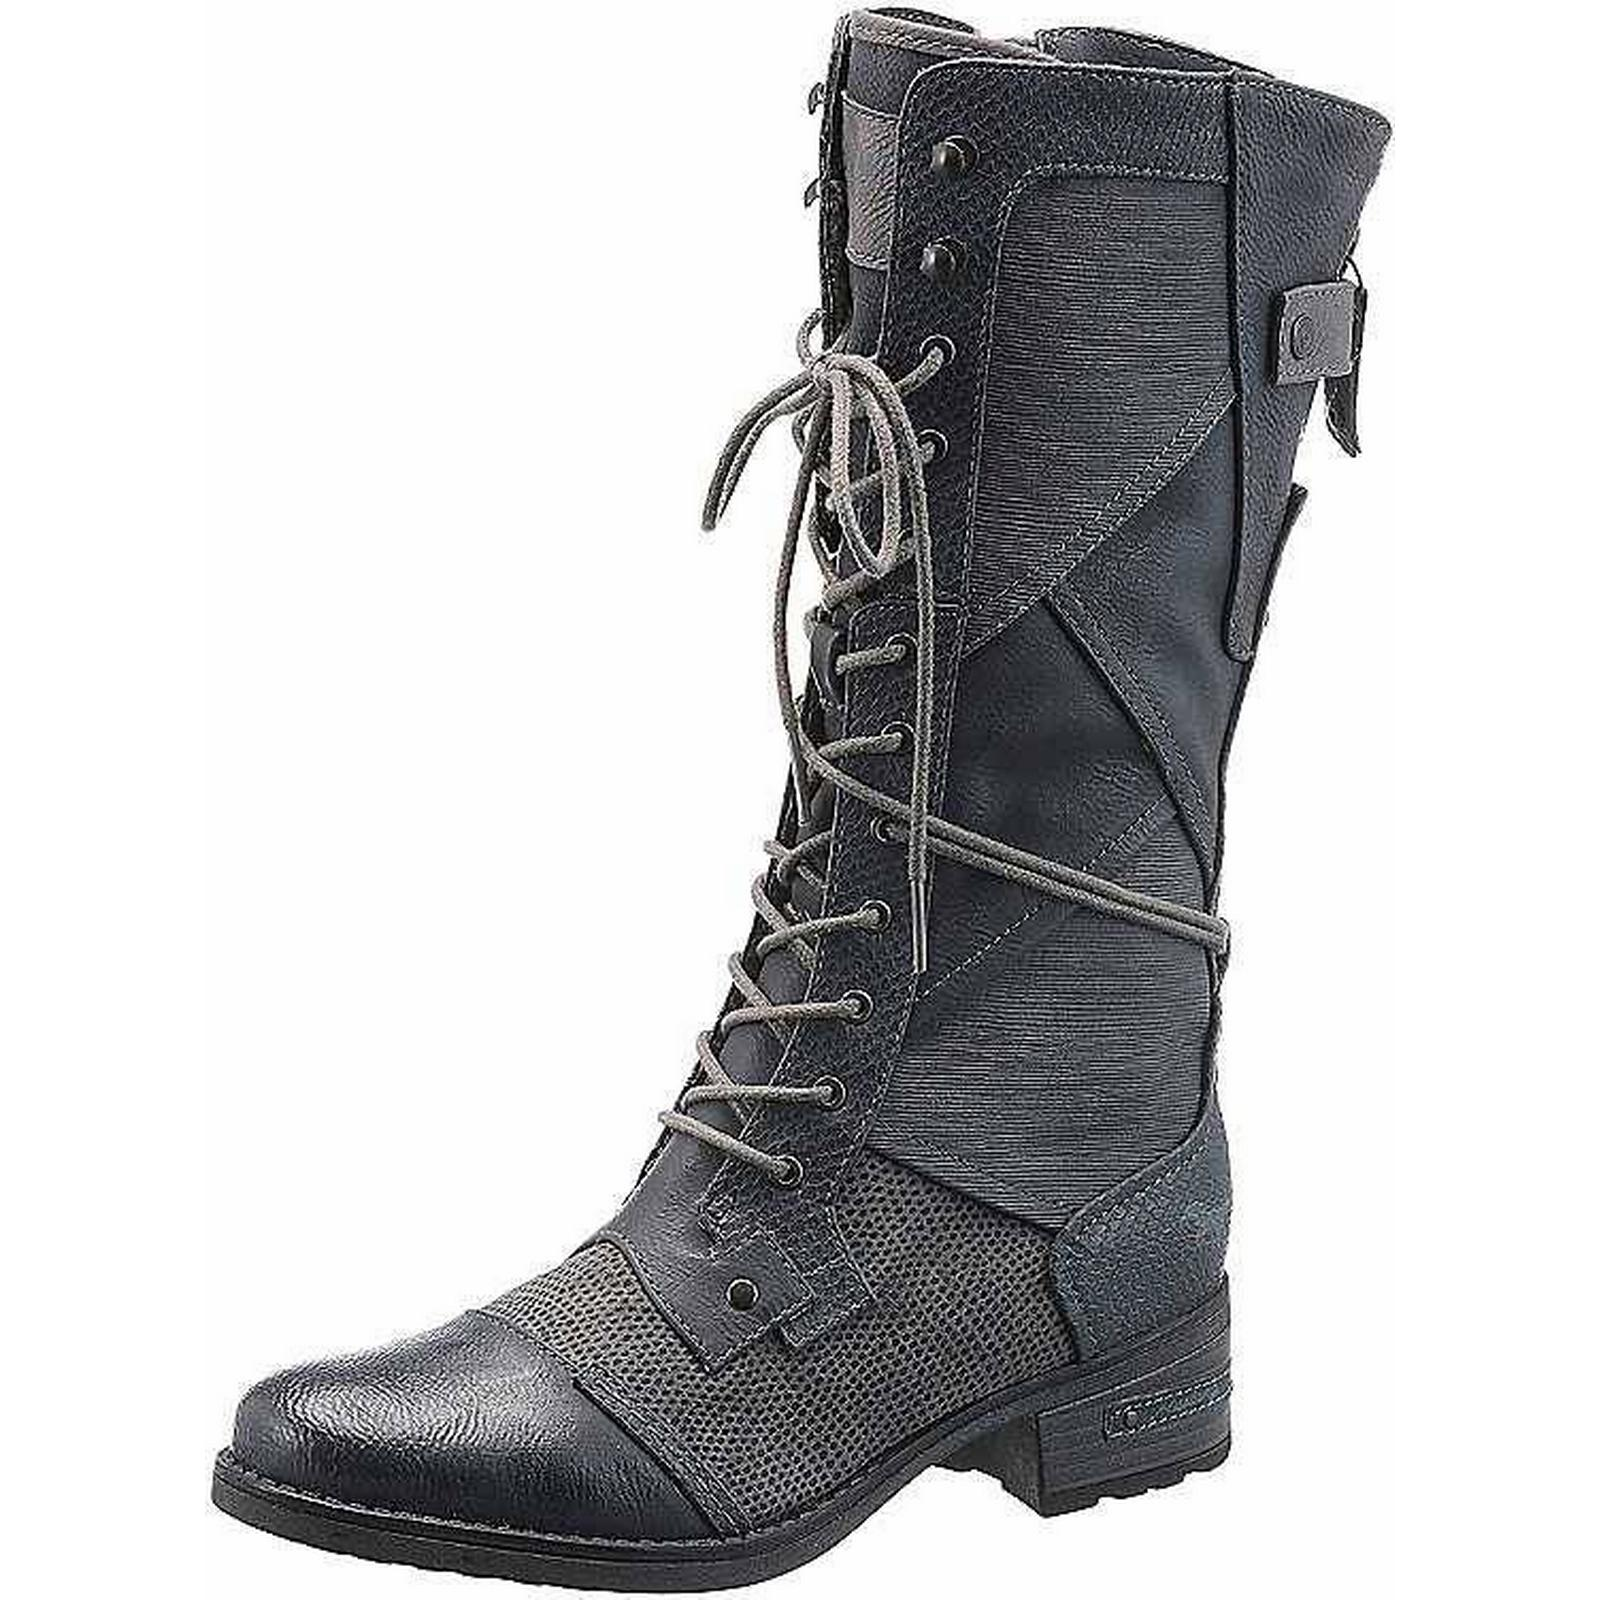 Mustang Patchwork Boots Boots Boots by Mustang 18d2b0